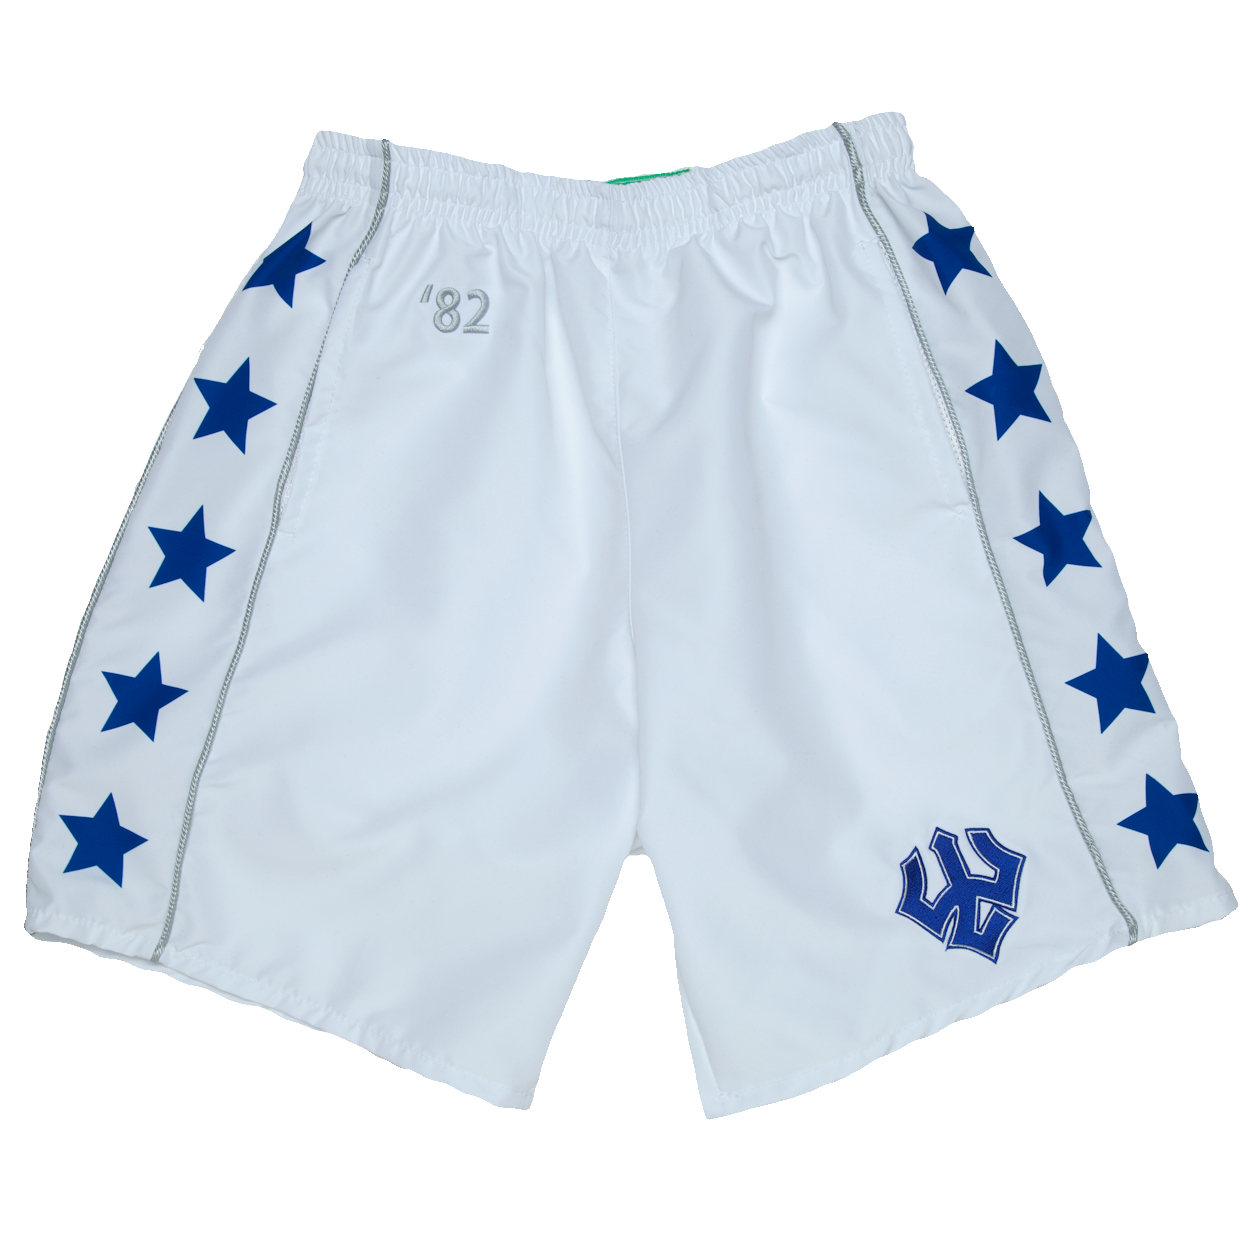 Cover Image For Throwback Lacrosse Shorts, White